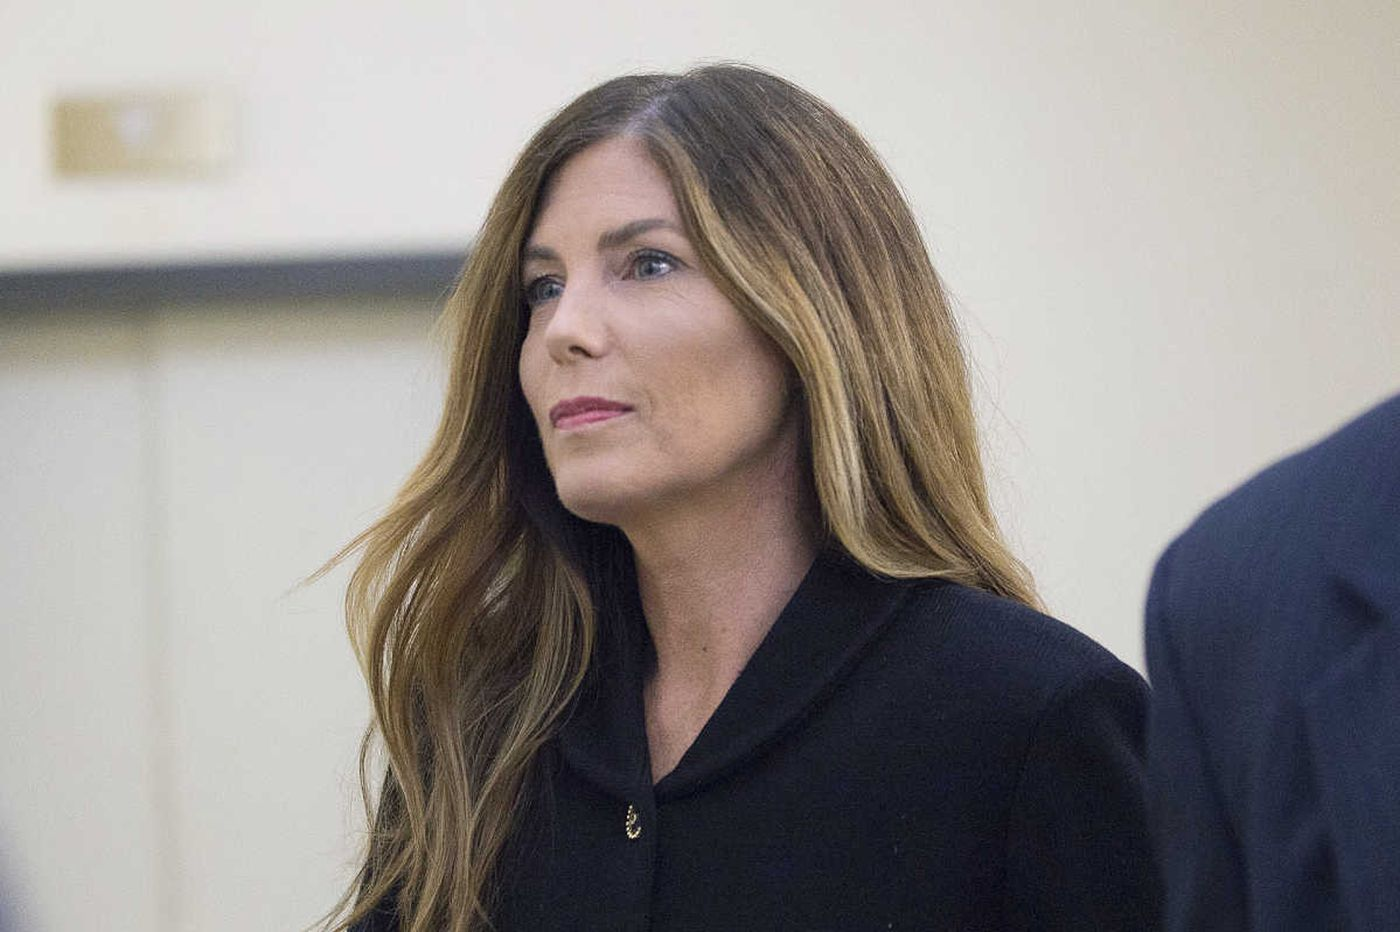 Inquirer Editorial: What else did Kathleen Kane do wrong as attorney general?